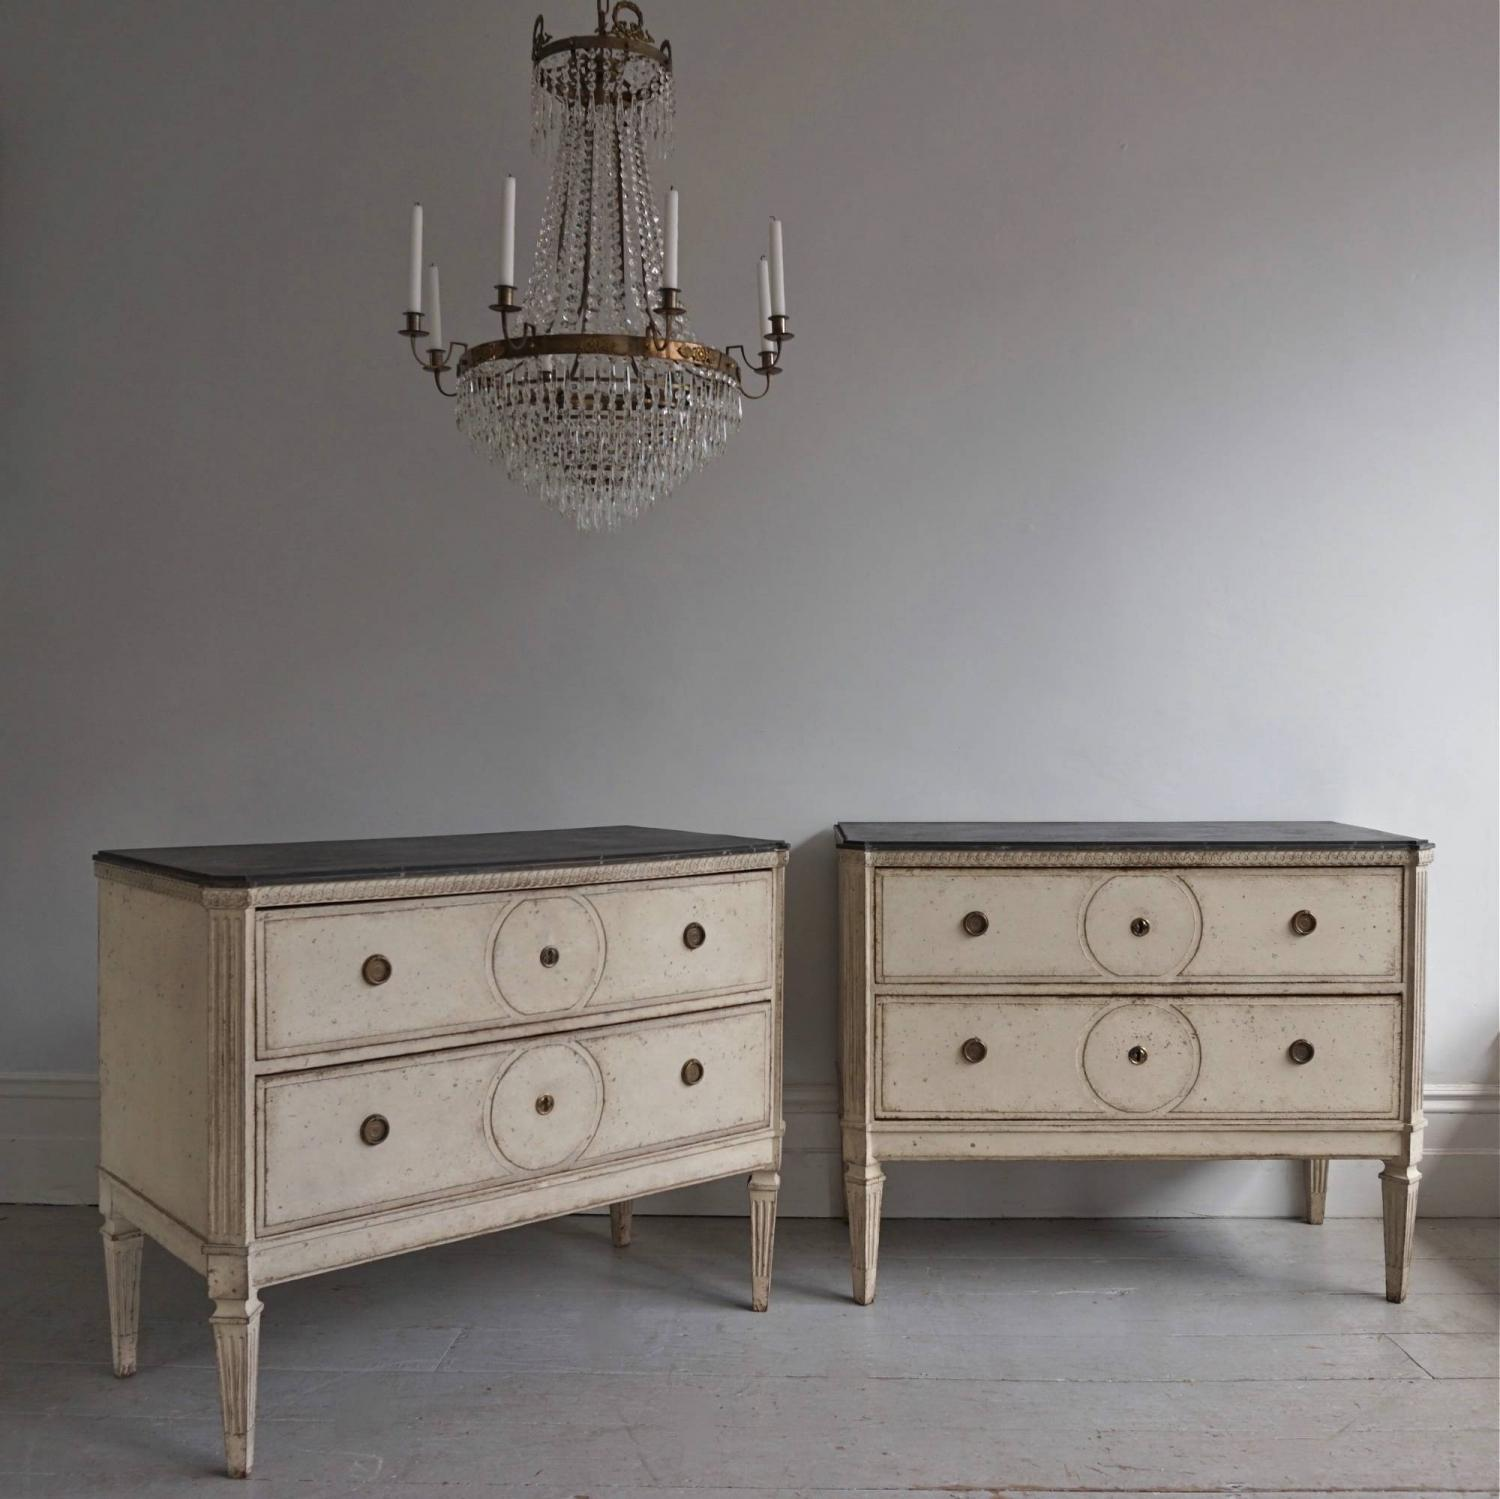 PAIR OF LARGE SWEDISH GUSTAVIAN STYLE CHESTS